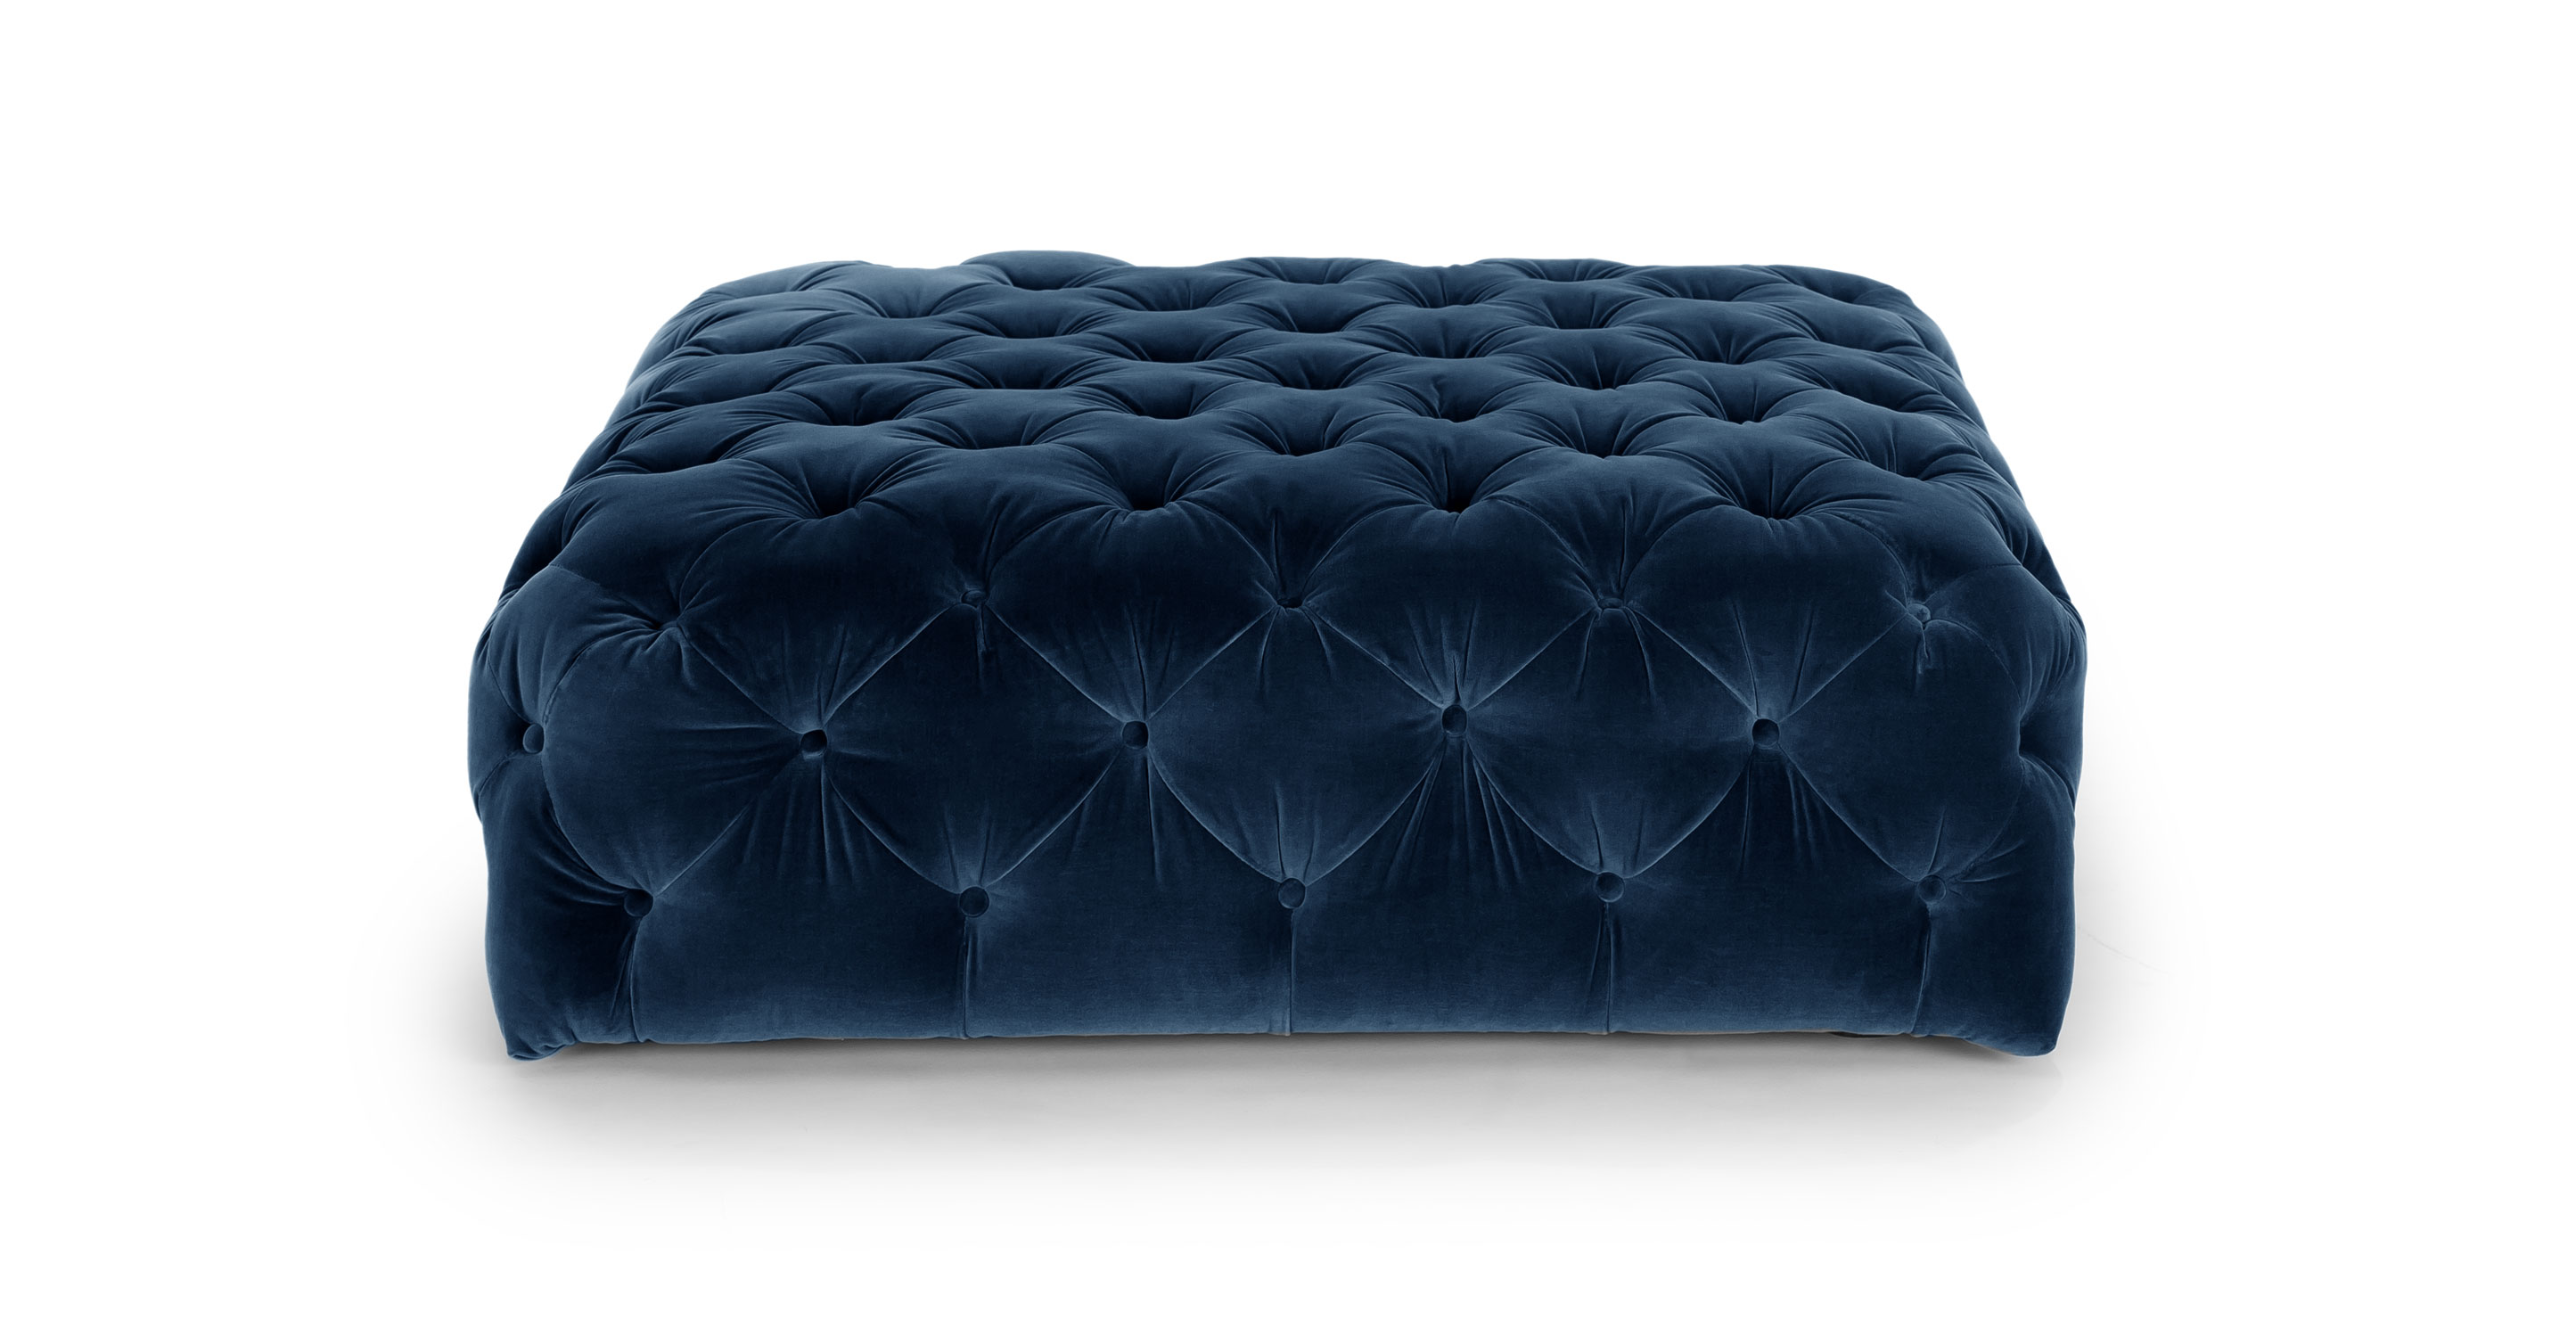 diamond cascadia blue ottoman ottomans article. Black Bedroom Furniture Sets. Home Design Ideas